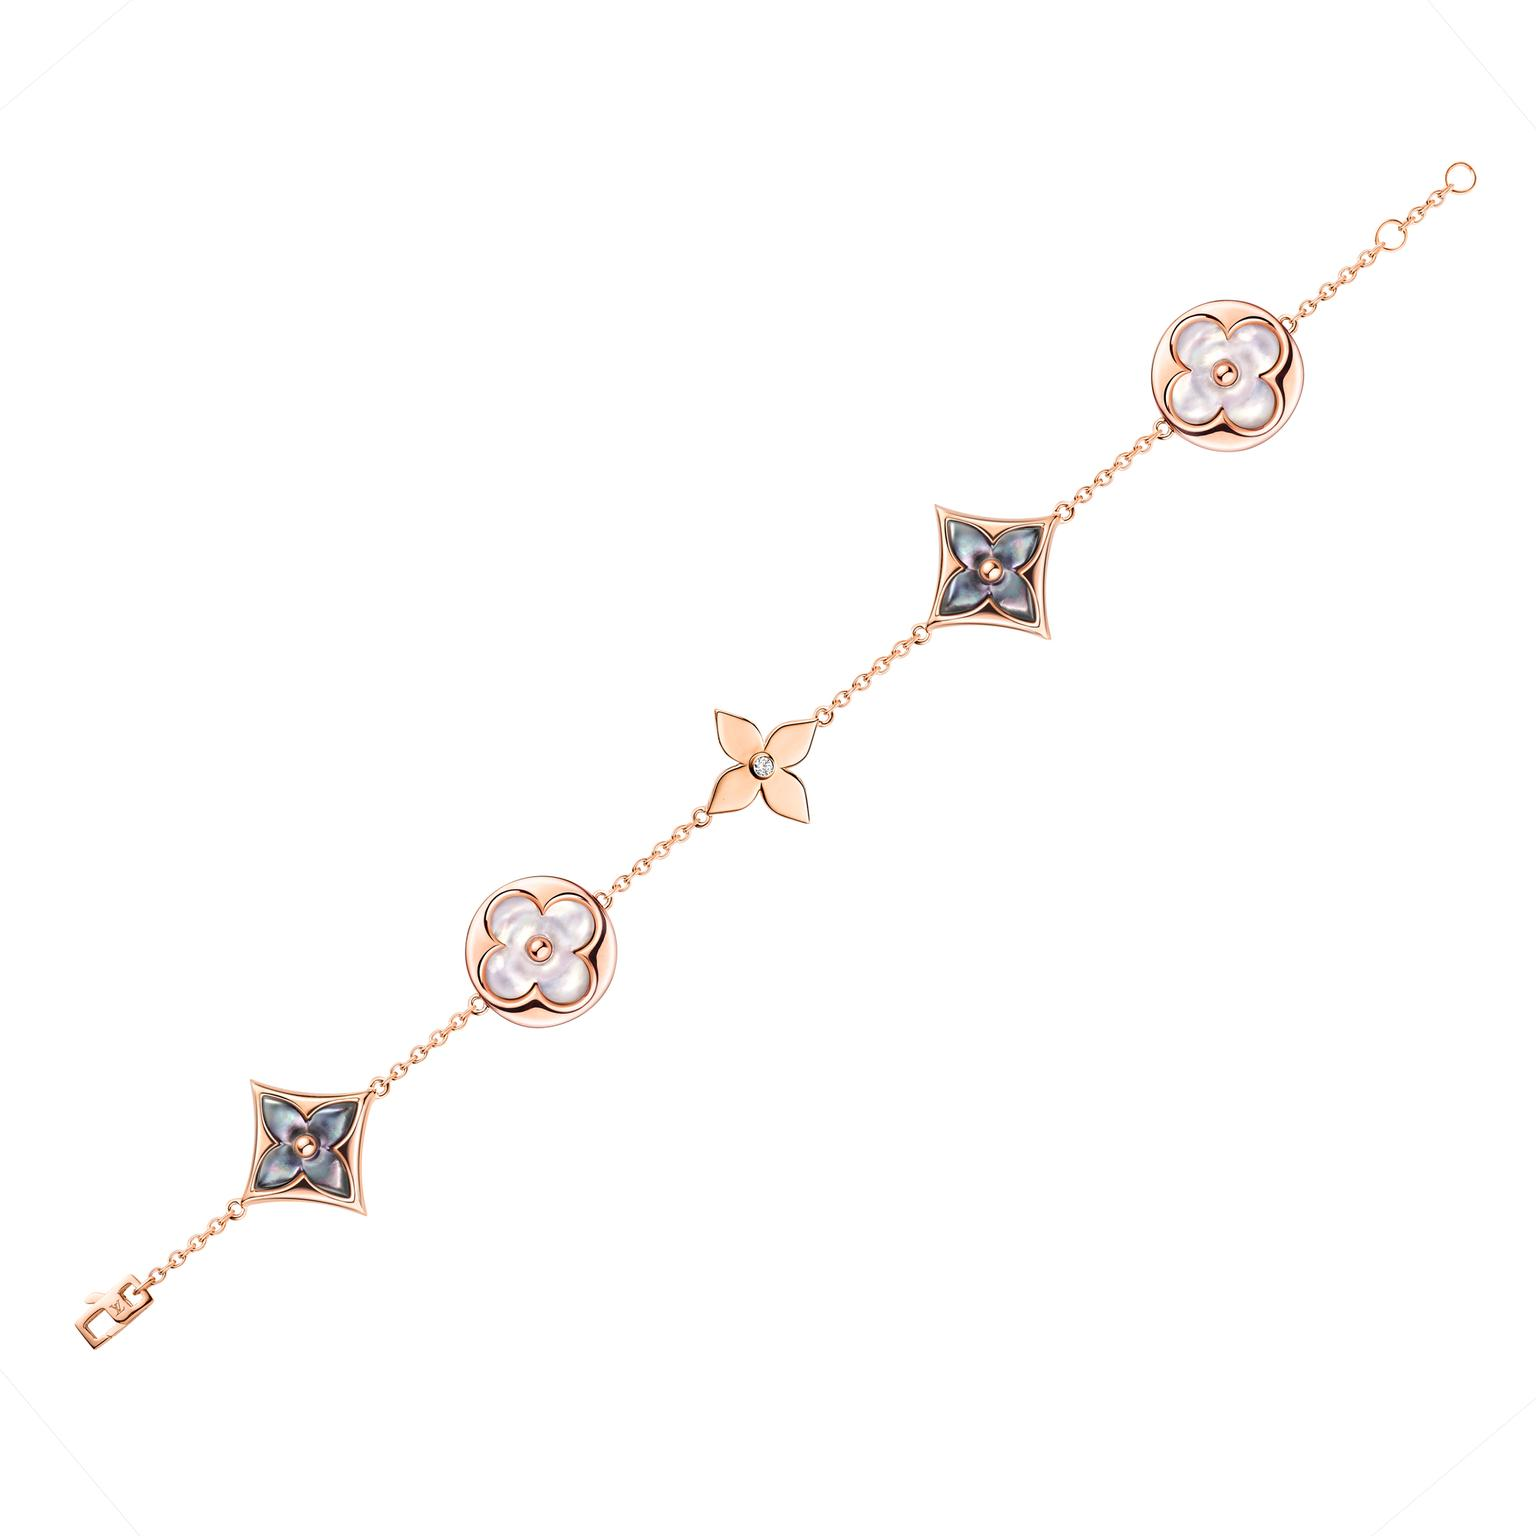 Louis Vuitton jewellery bracelet in white and grey mother-of-pearl